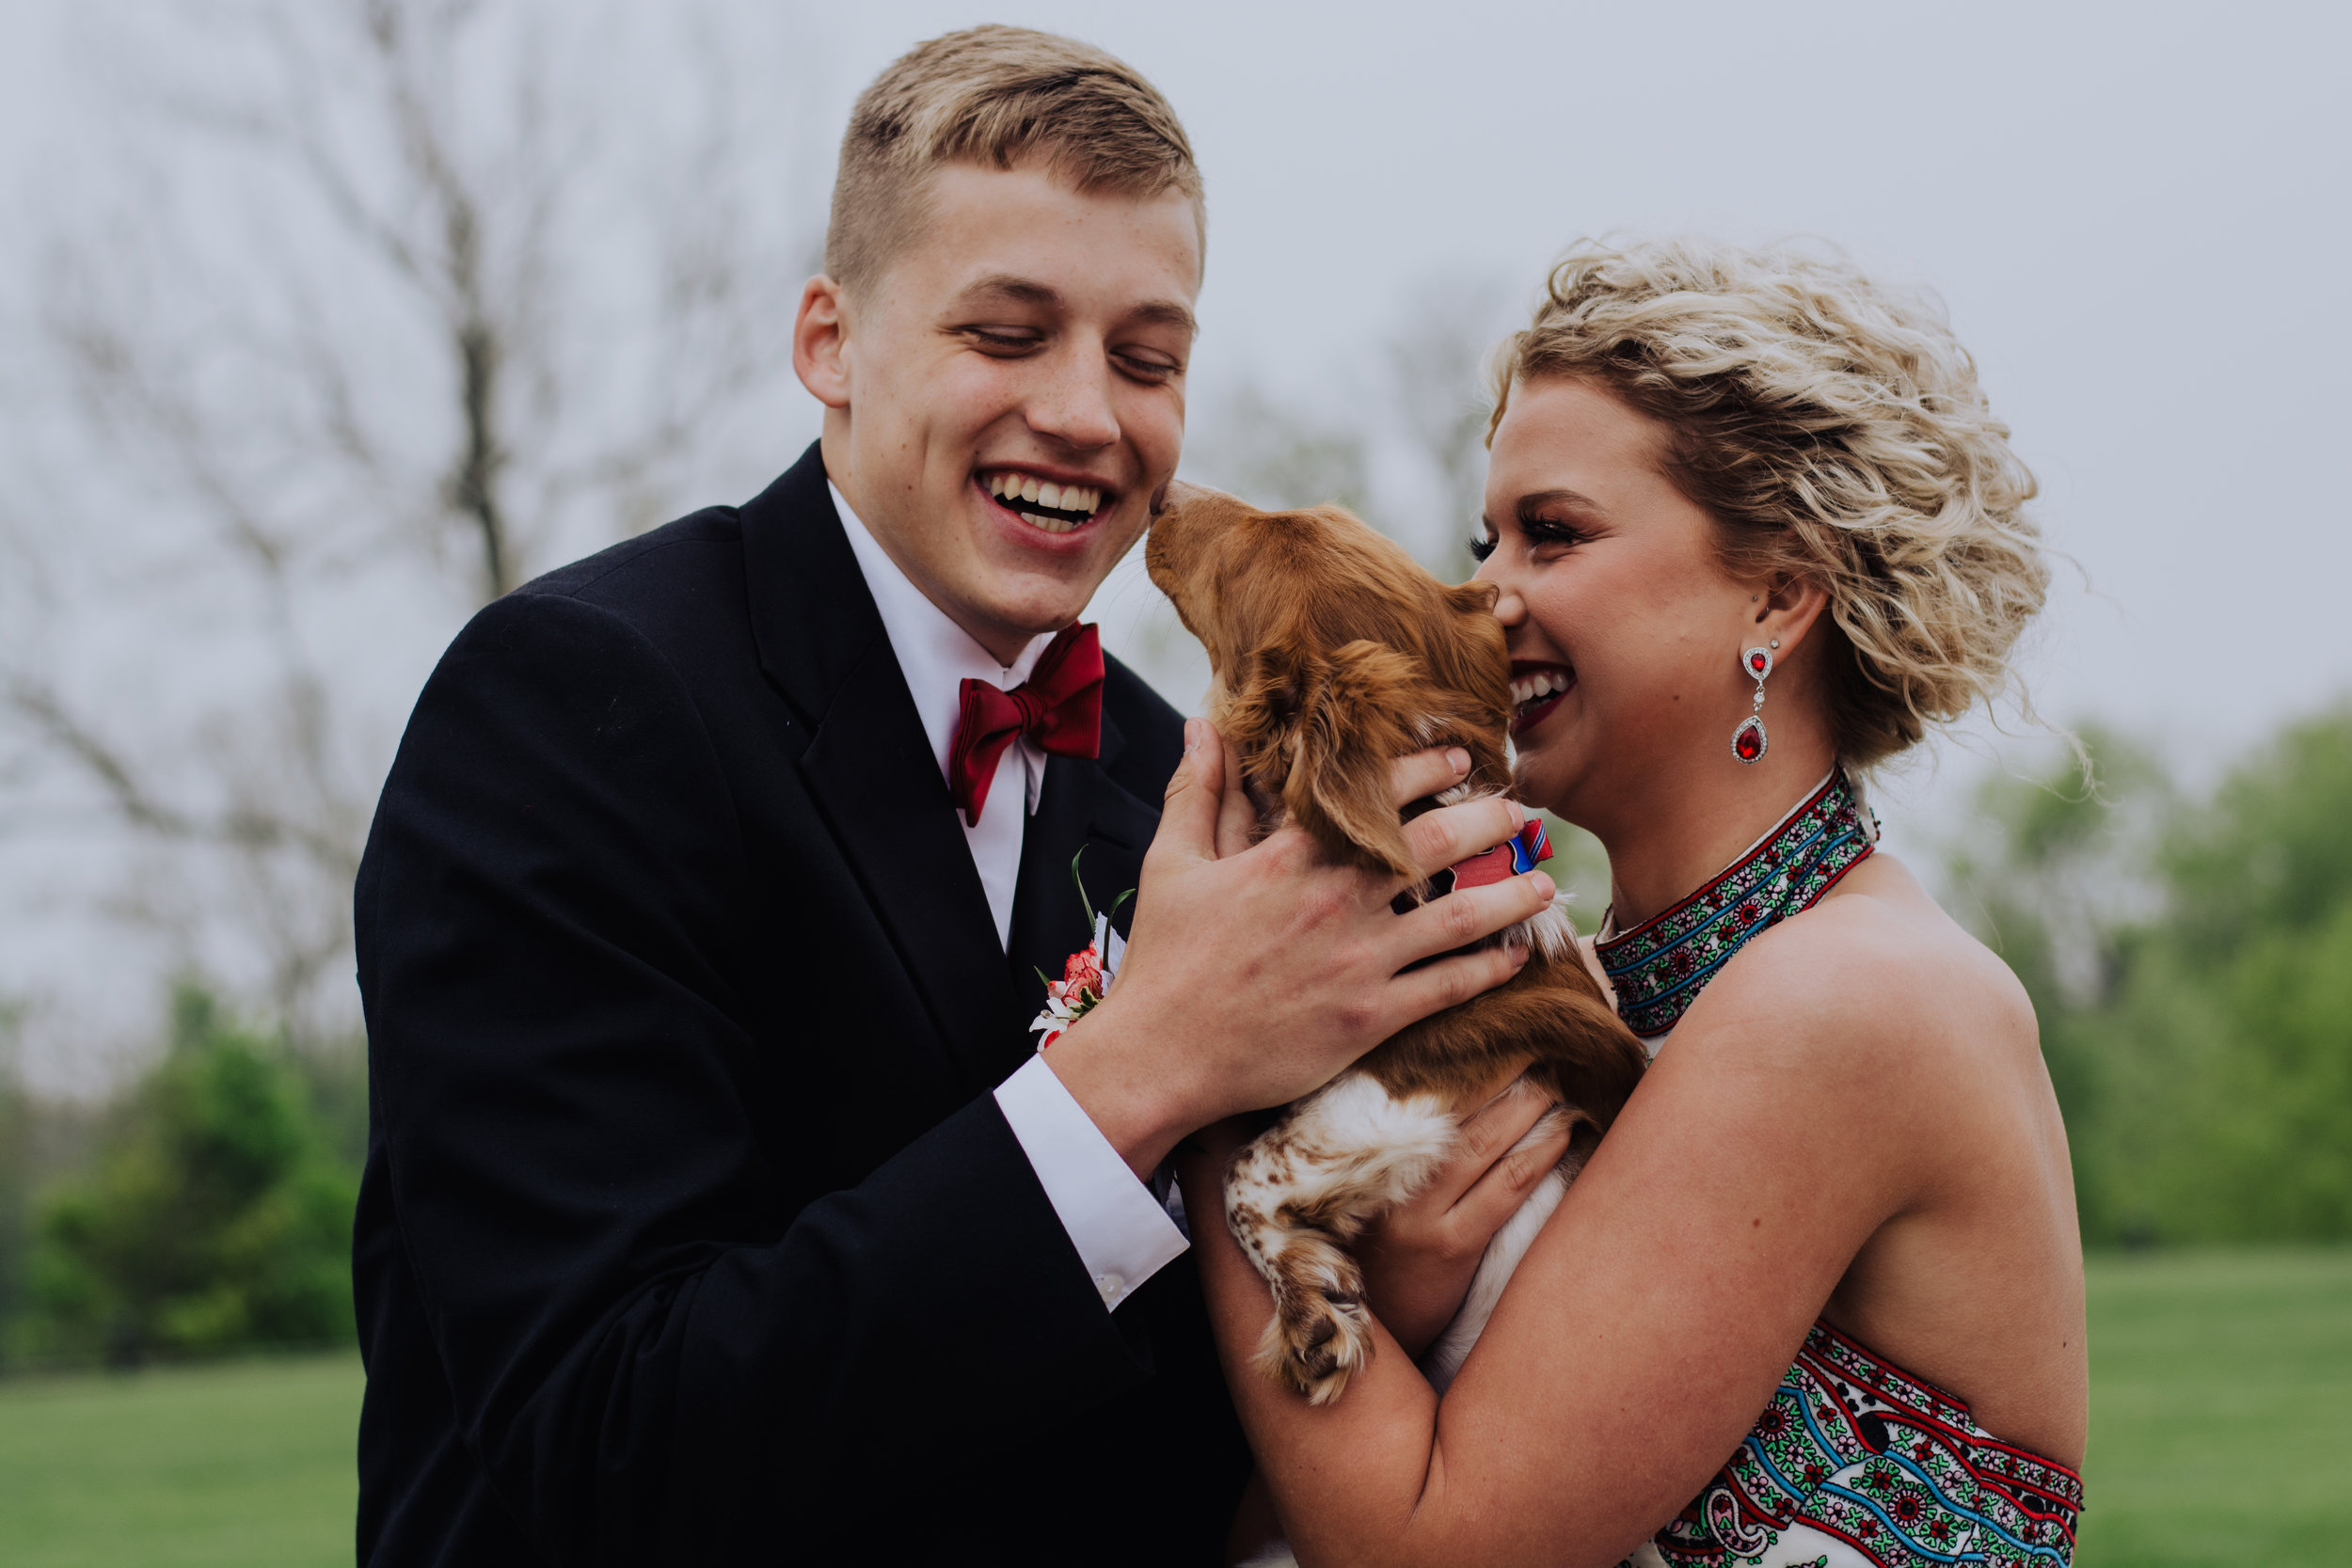 Joshlyn&Carter_PromPortraits_April2017_SamanthaRosePhotography_-5.jpg